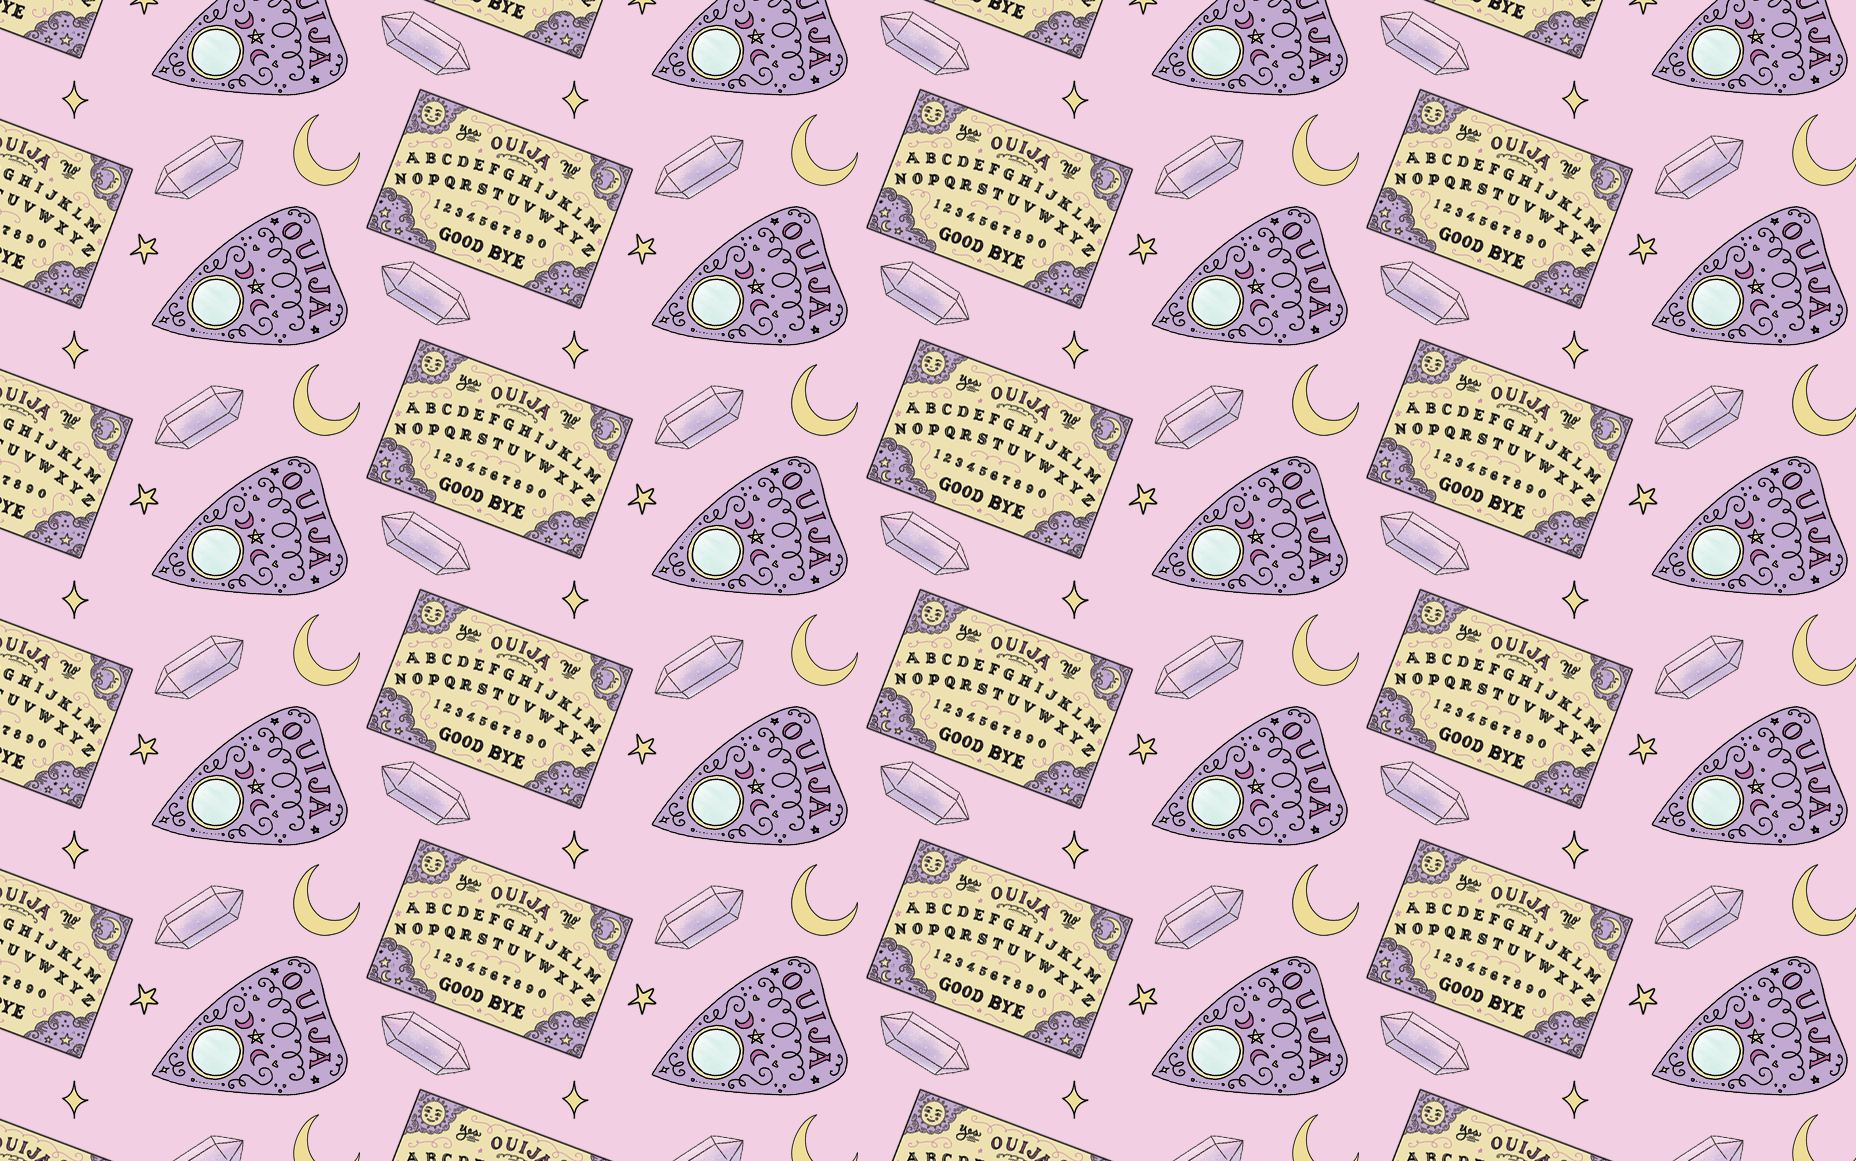 Basic Witch Wallpaper Downloads Lace and Whimsy